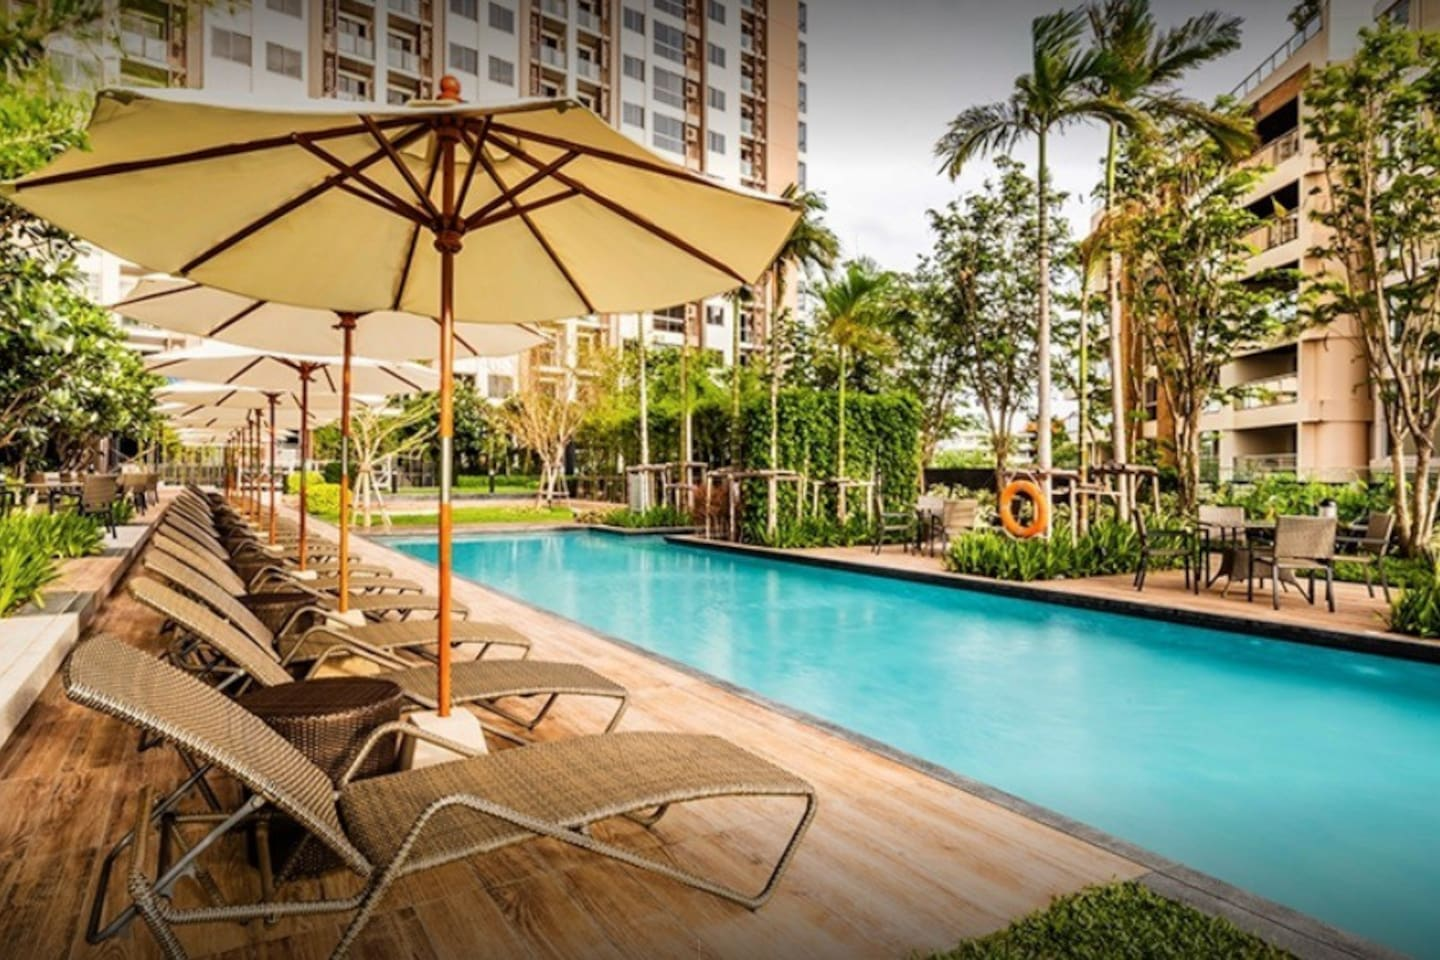 Apartment at a luxury condo featuring 5-star services including an amazing ground floor pool (see pic) with jacuzzi, climbing and huge slider ideal for kids and grownups alike.